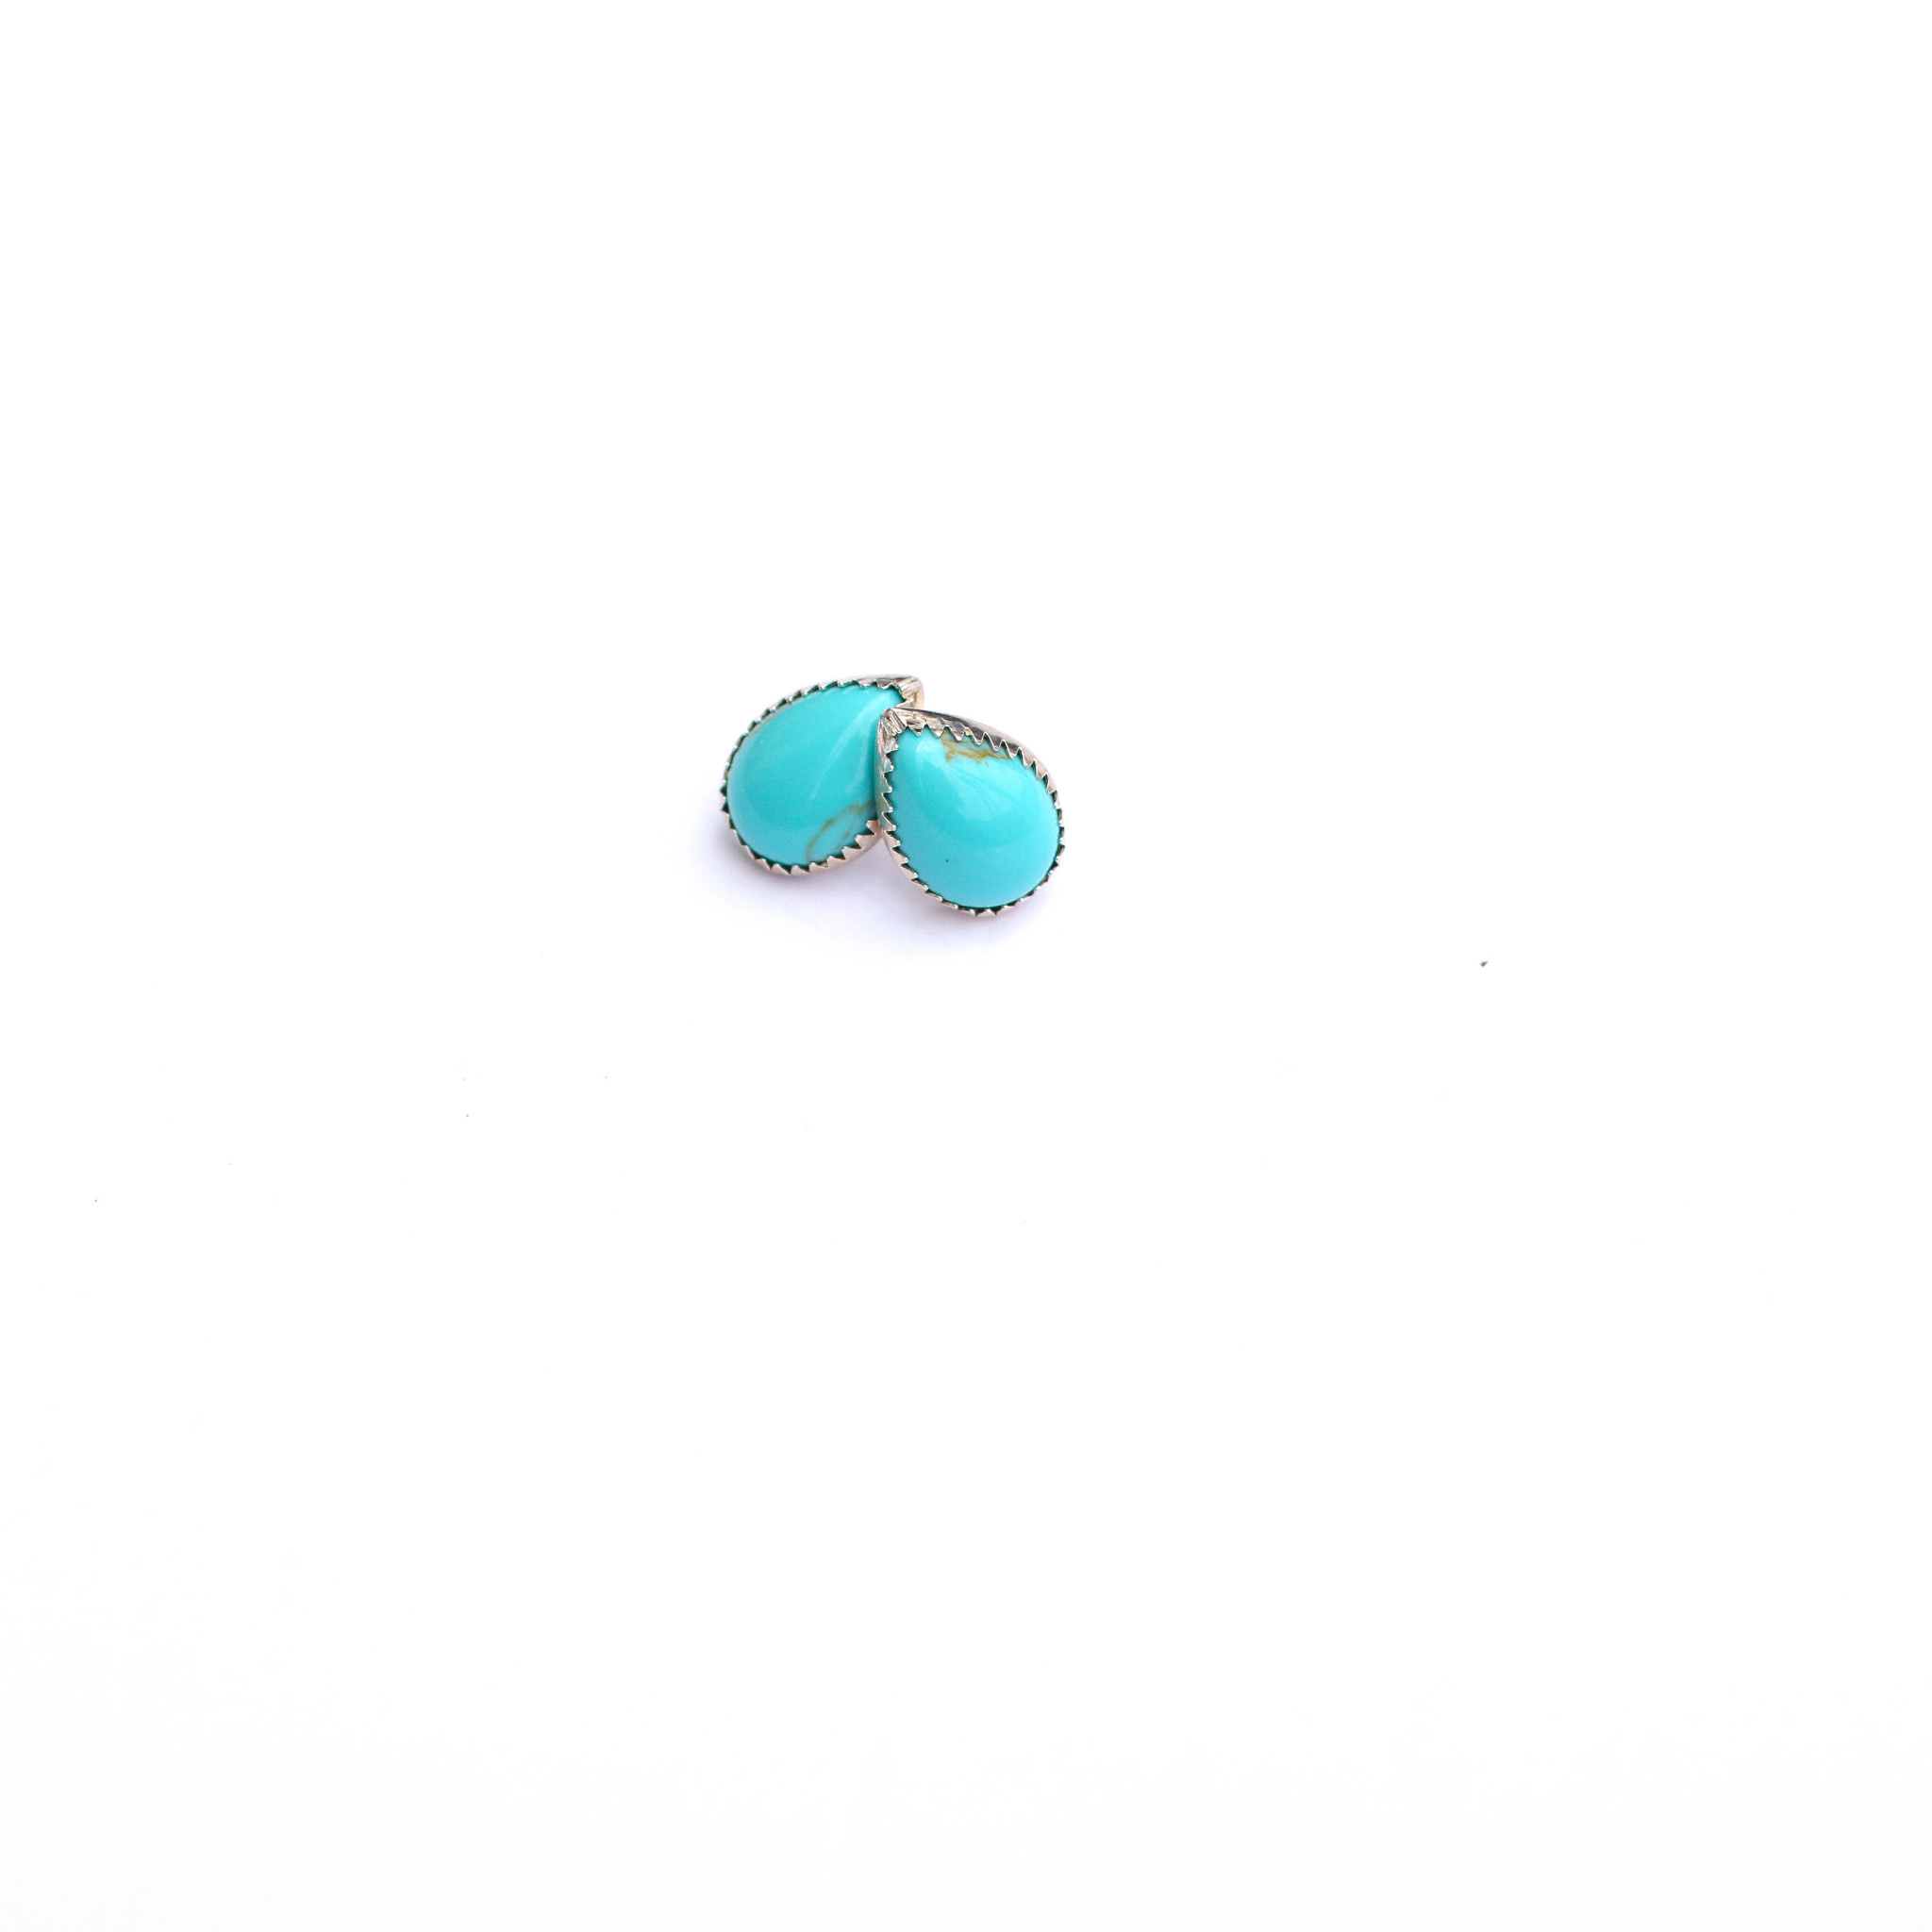 Punchy's Teardrop Turquoise Studs